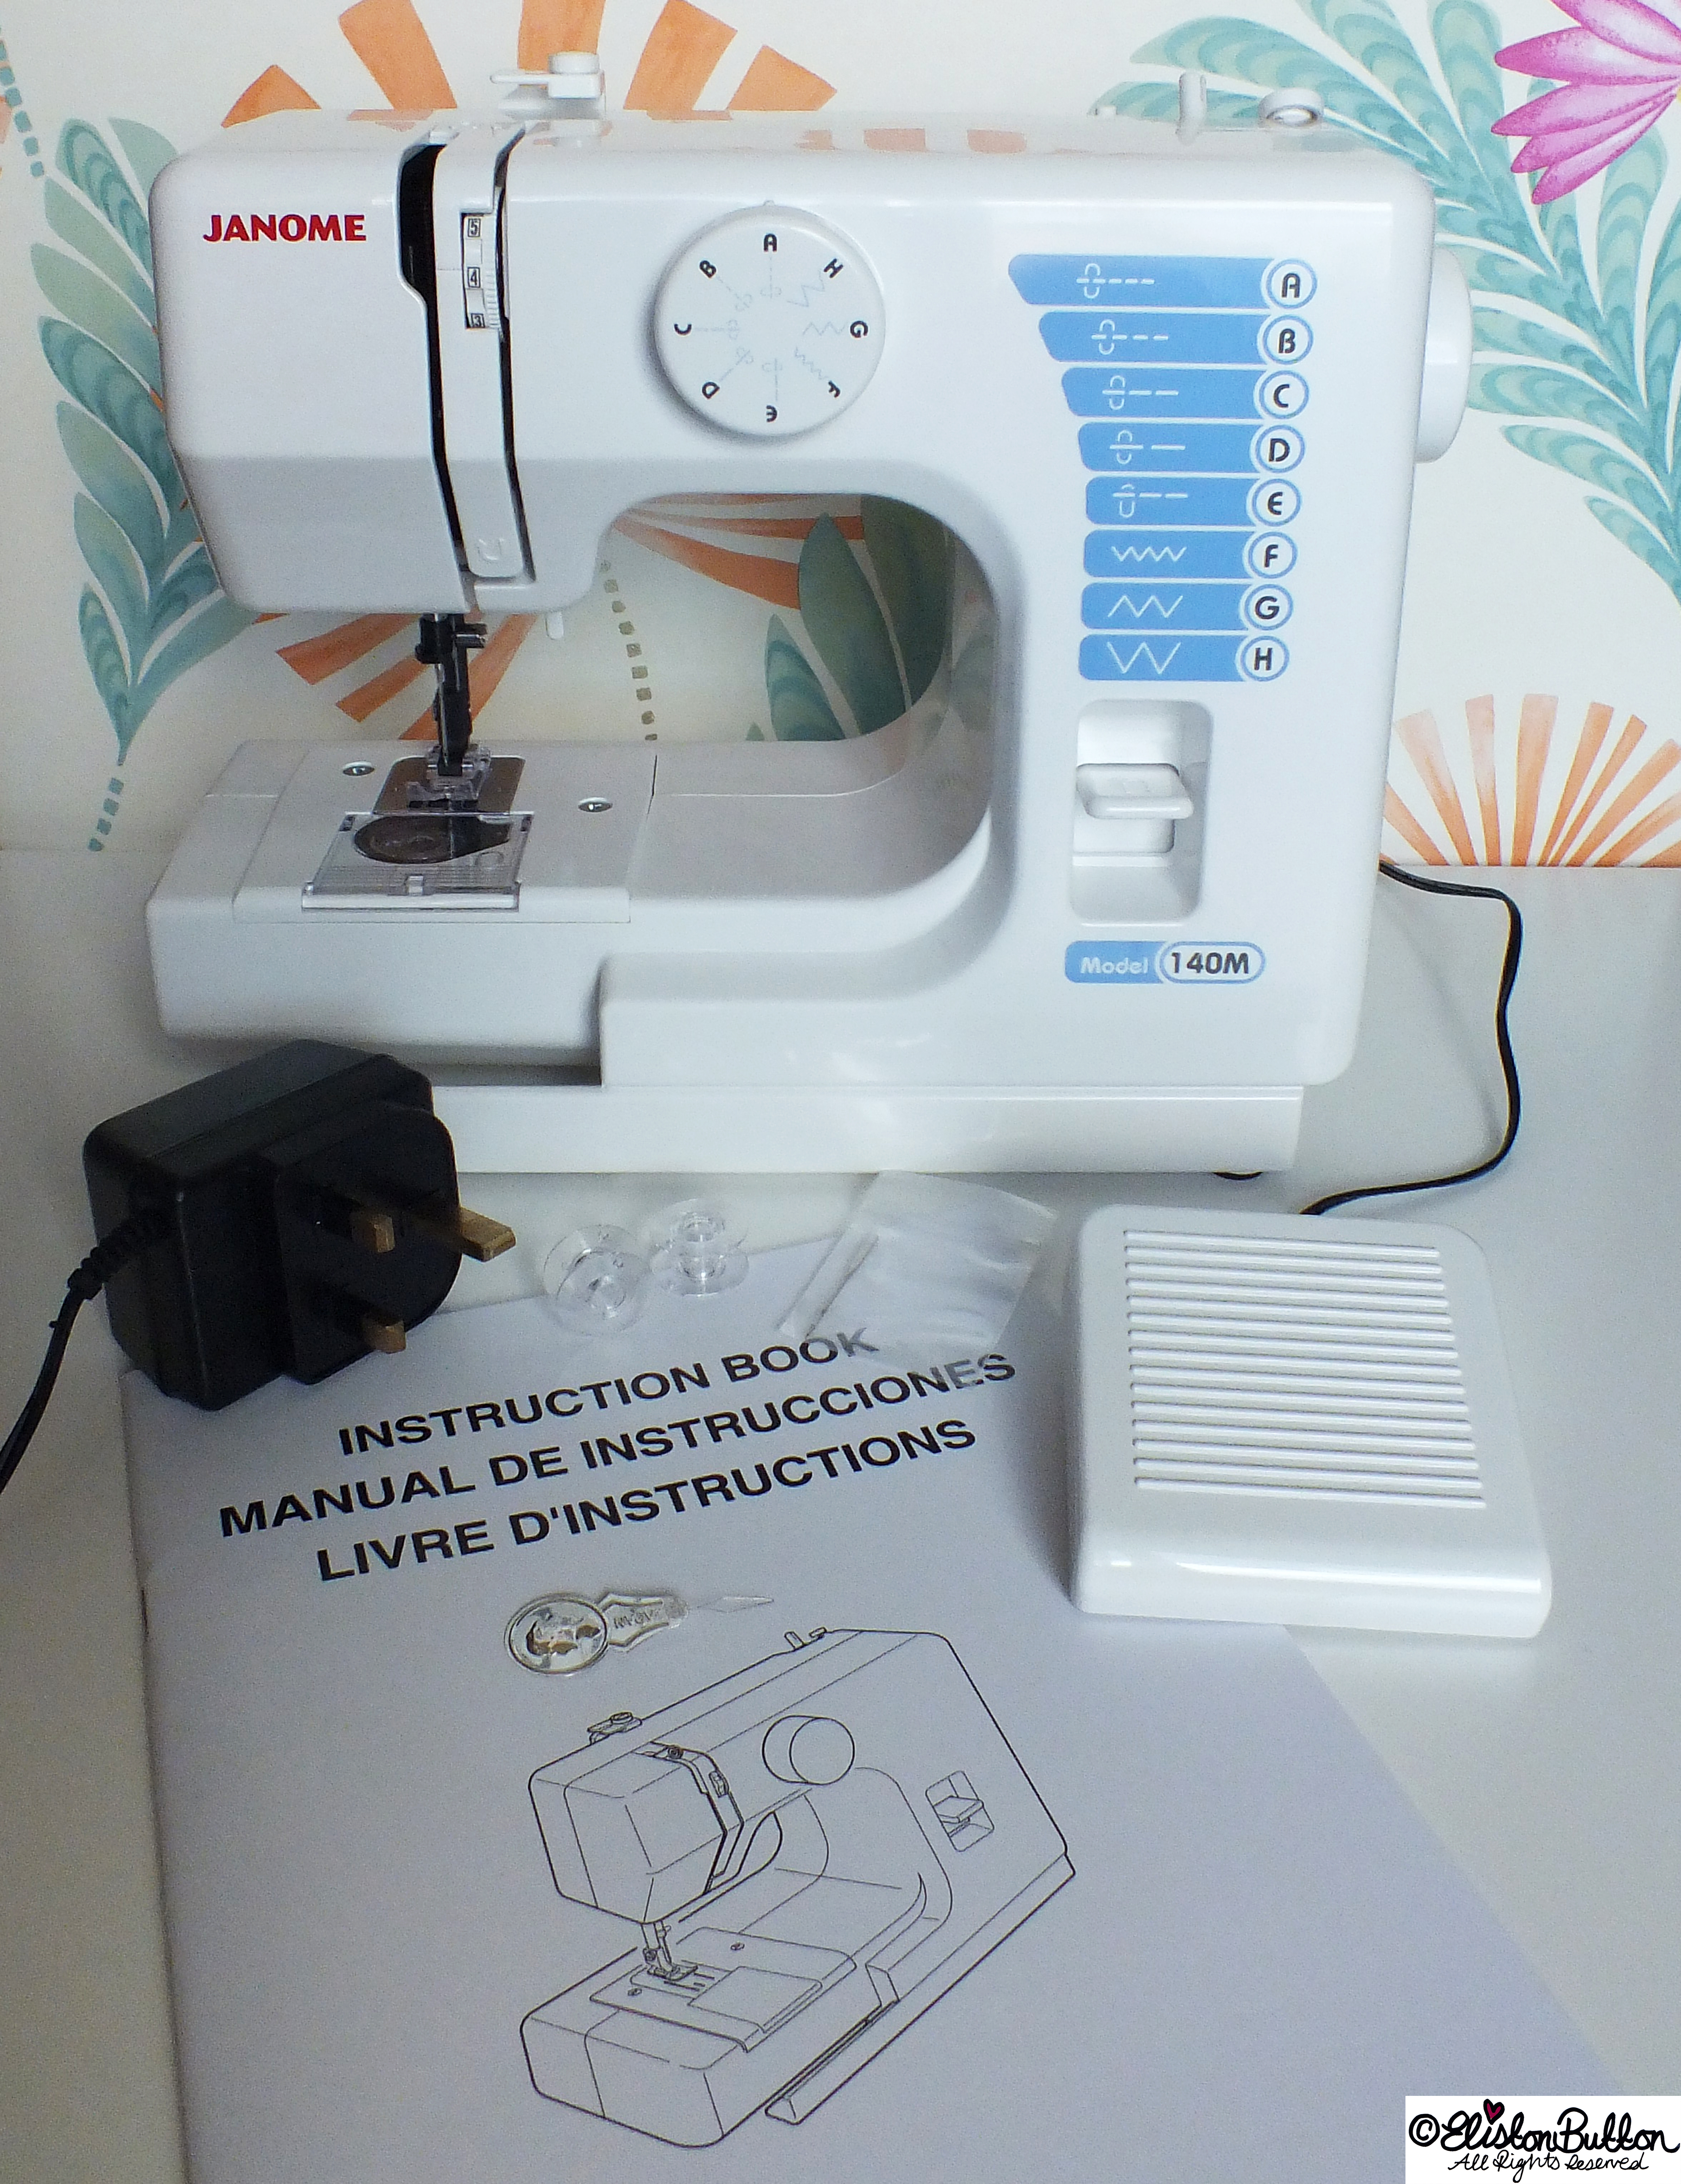 Janome 140M Mini Sewing Machine - Unboxed - Sew Good! – This Hobbycraft Sewing Machine at www.elistonbutton.com - Eliston Button - That Crafty Kid – Art, Design, Craft & Adventure.